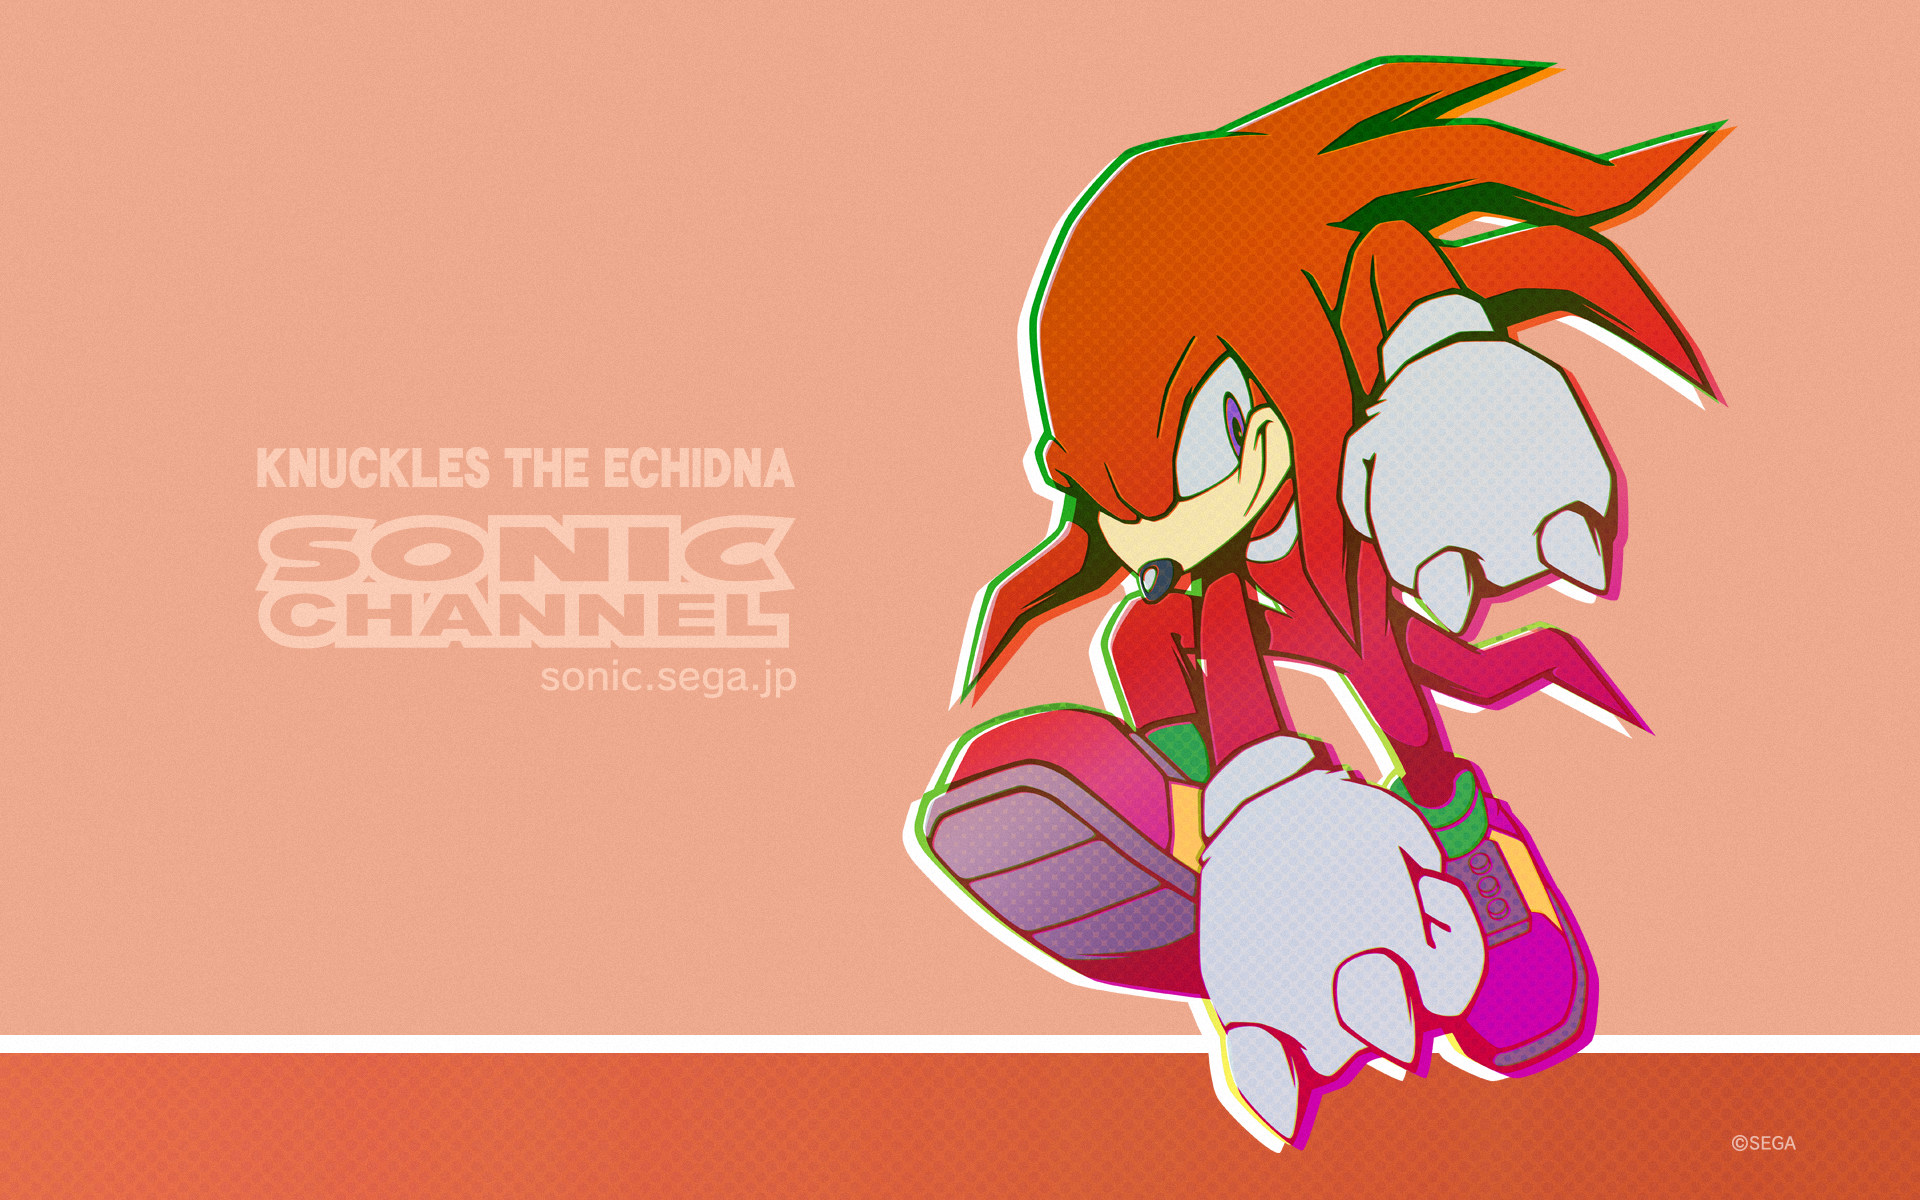 http://sonic.sega.jp/SonicChannel/enjoy/image/wallpaper_189_knuckles_15_pc.png